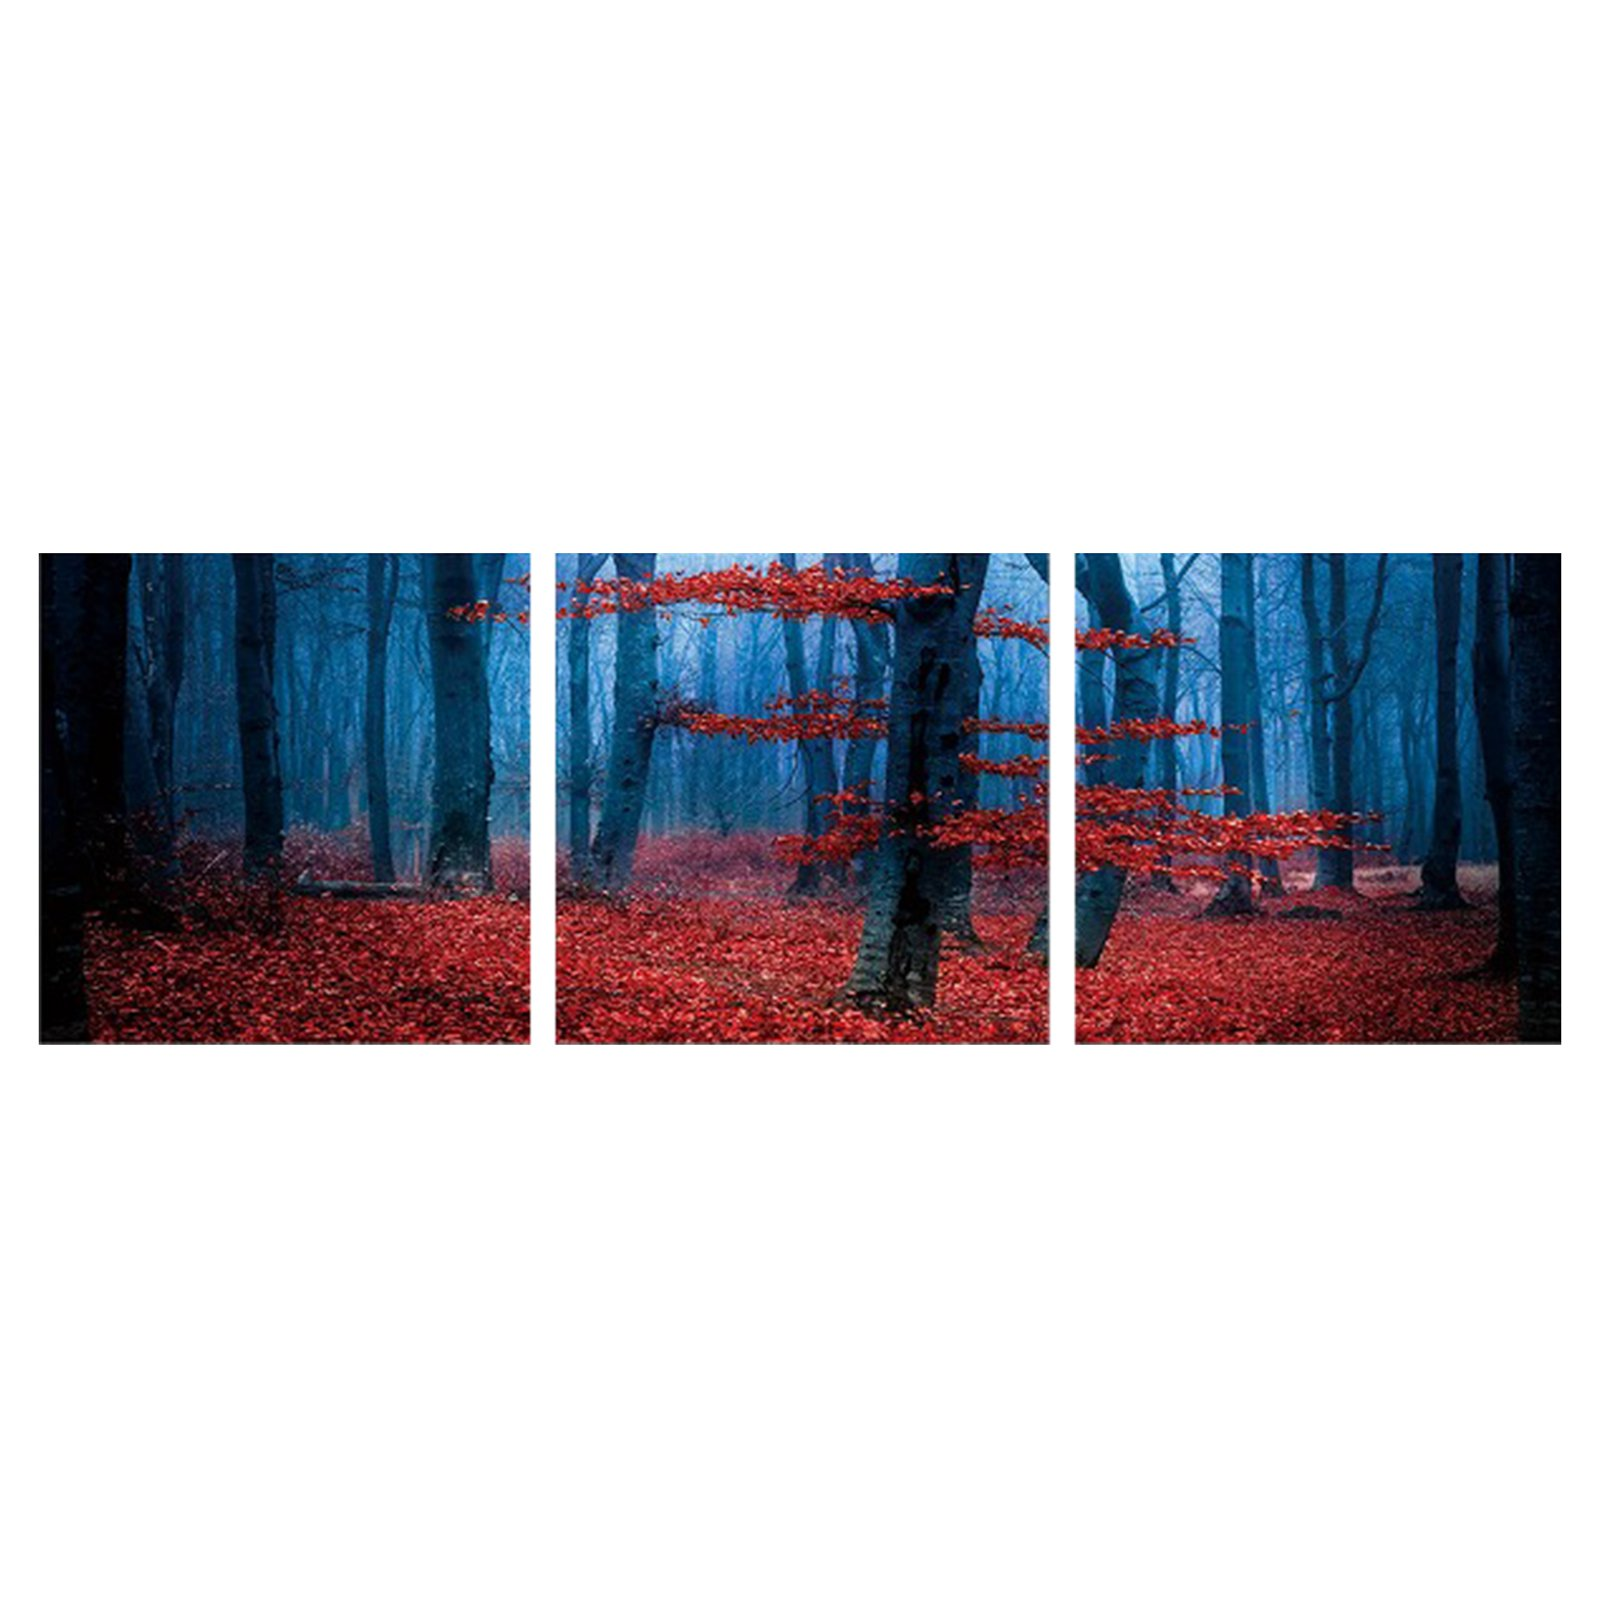 Furinno SeniA Enchanted Forest 3-Panel MDF Framed Photography Triptych Print, 48 x 16-in